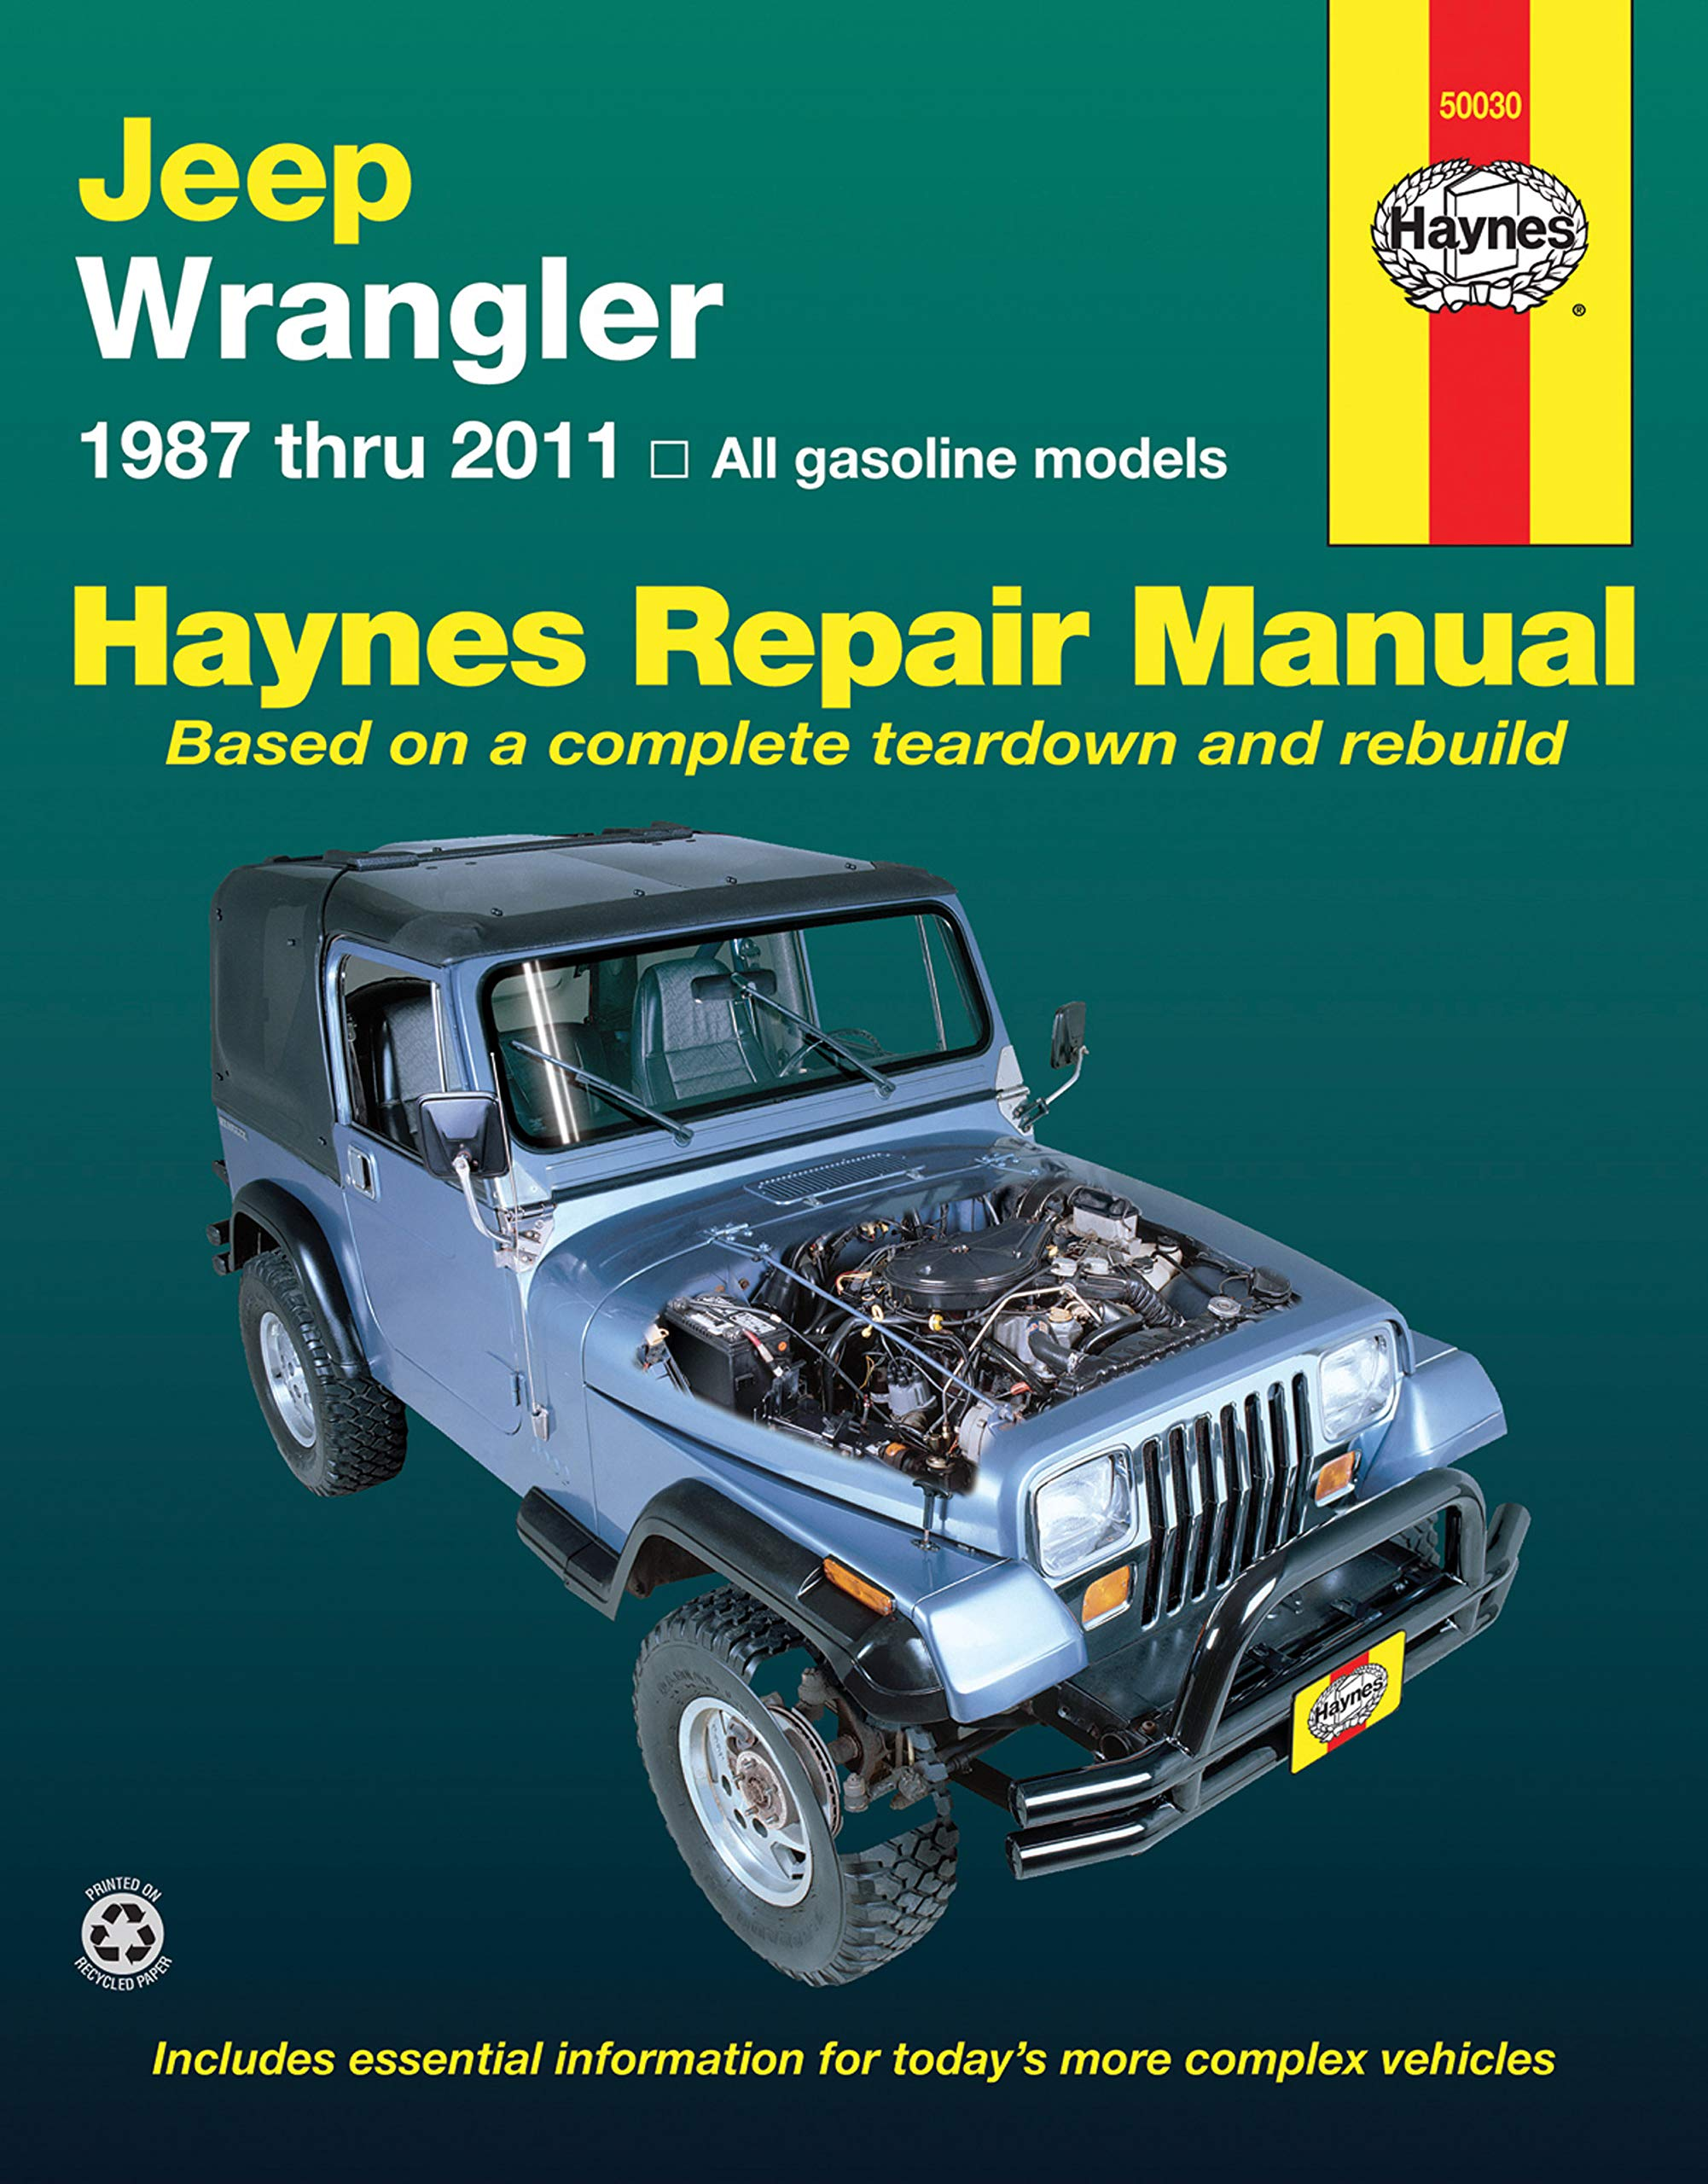 Haynes Jeep Wranglar (87-03) Manual (50030): aa: 0038345017773: Amazon.com:  Books